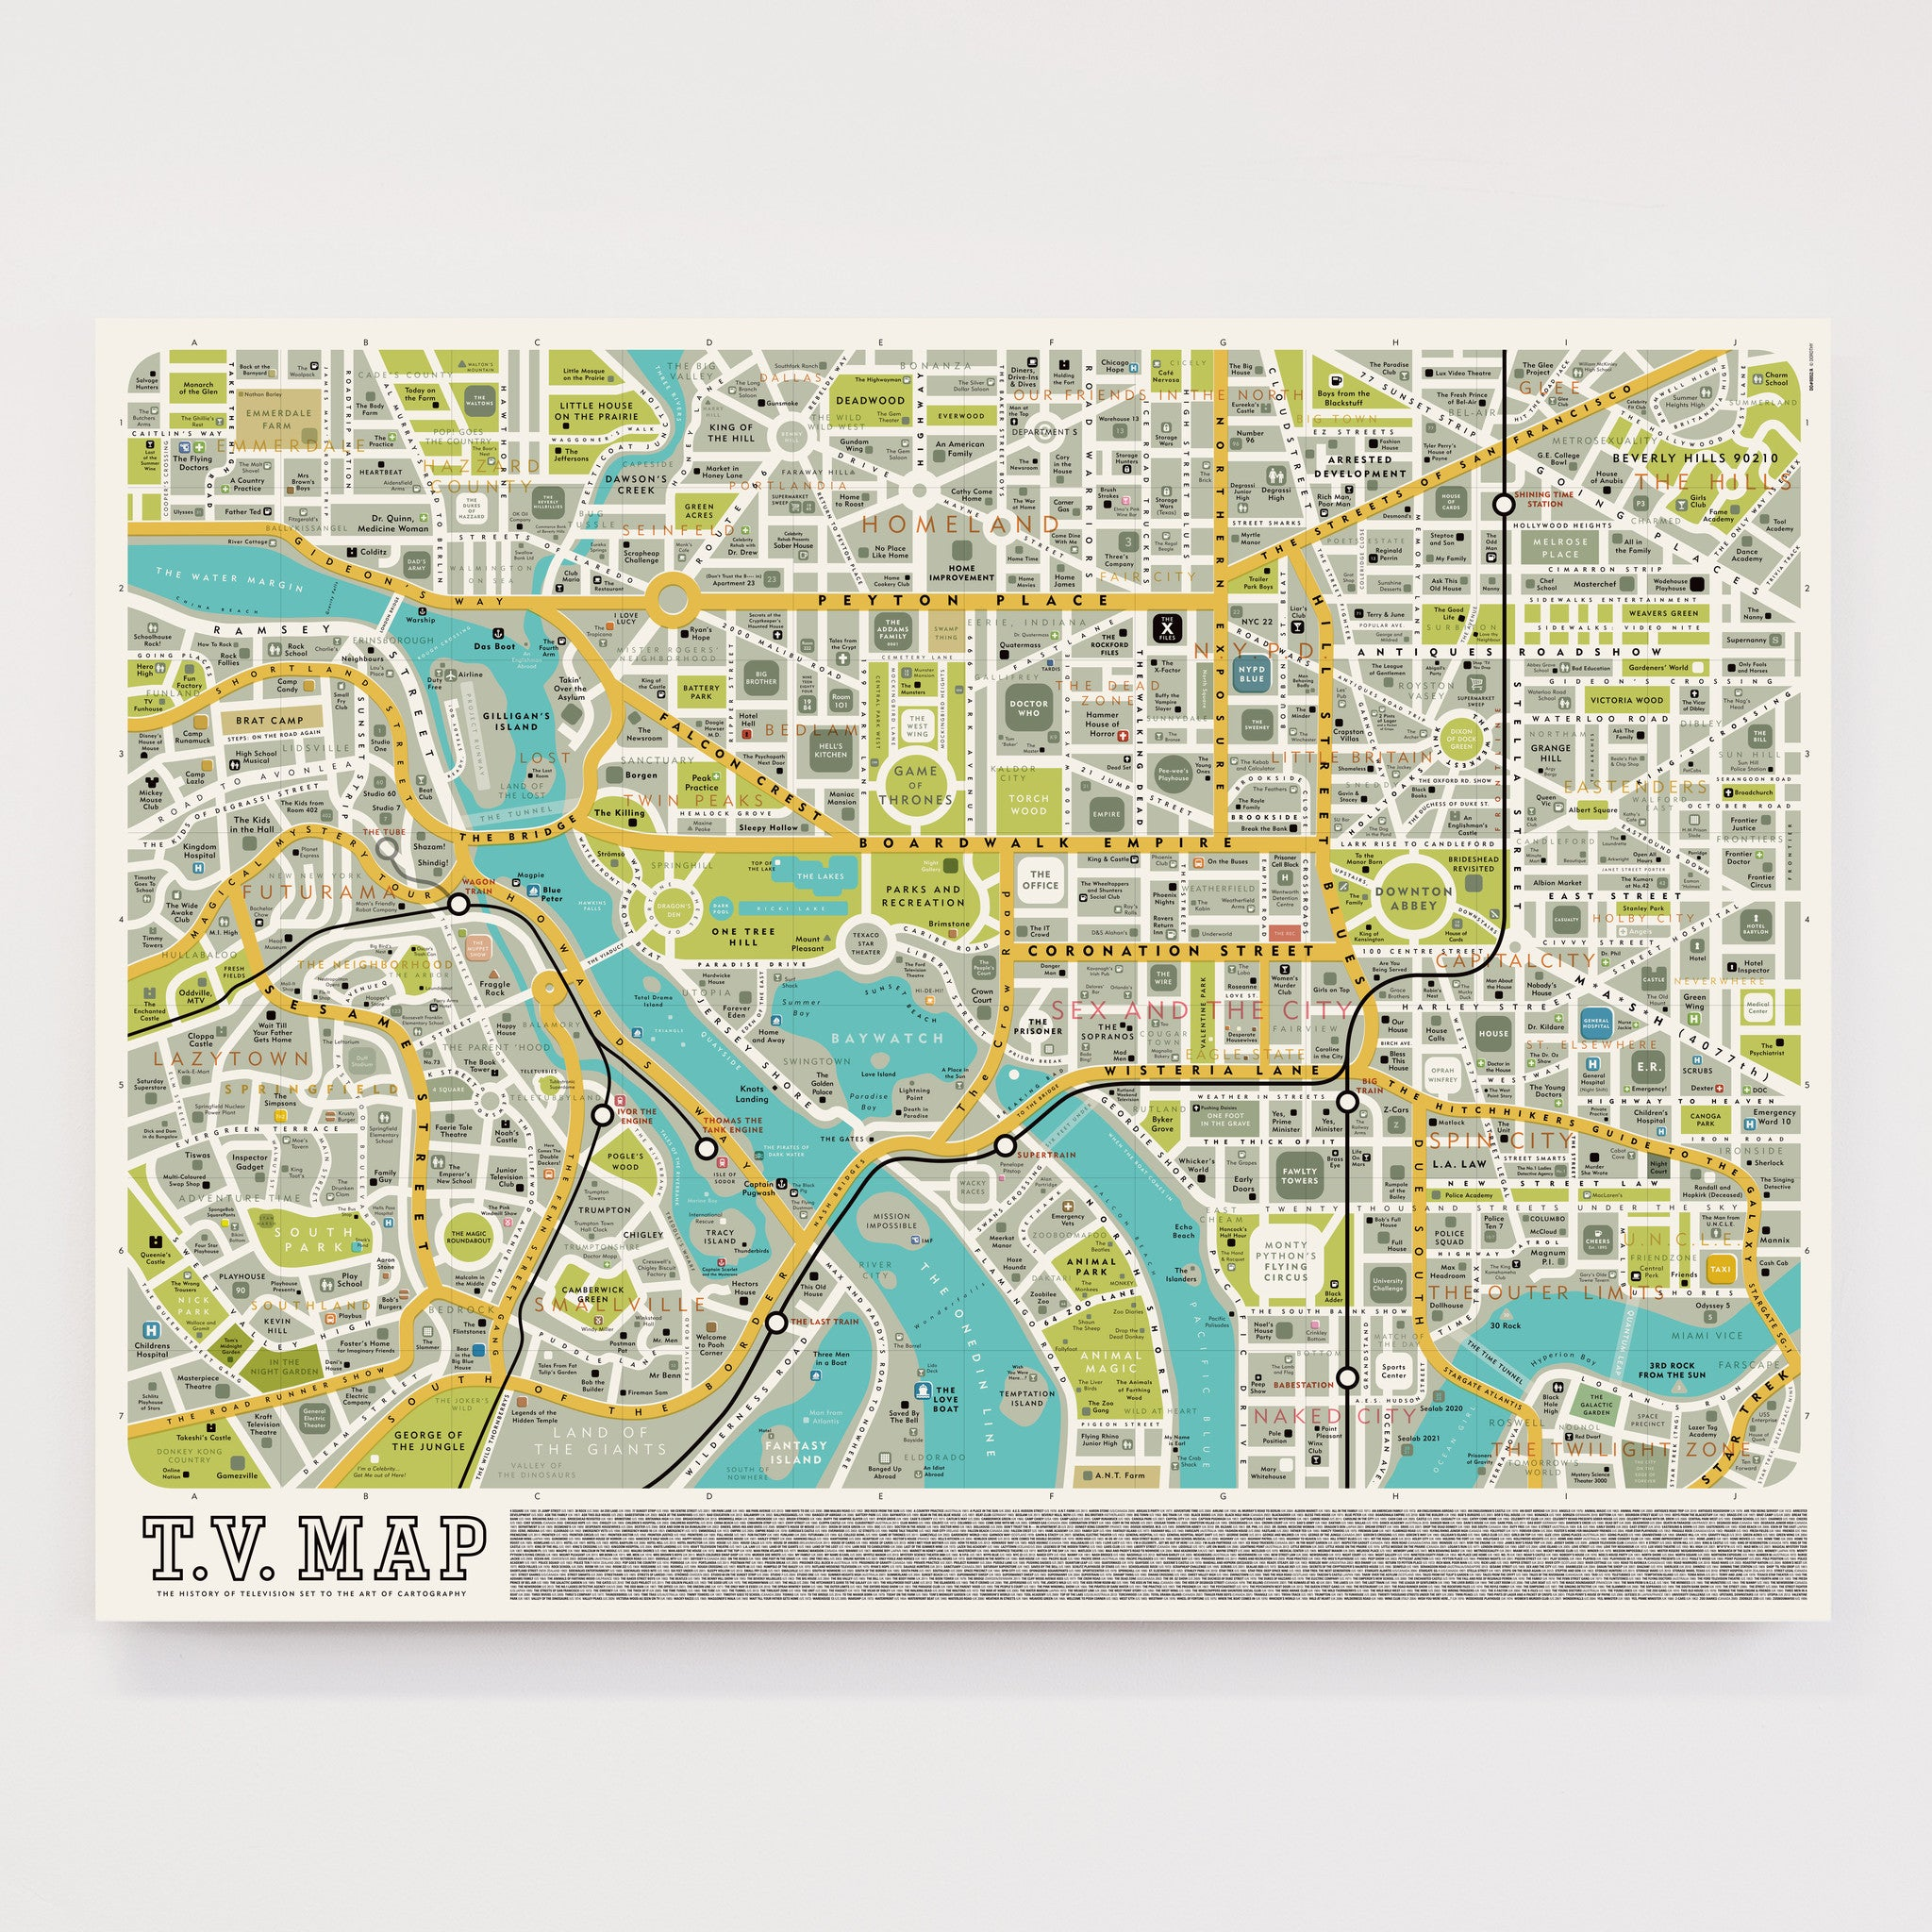 TV Map - Original Open Edition